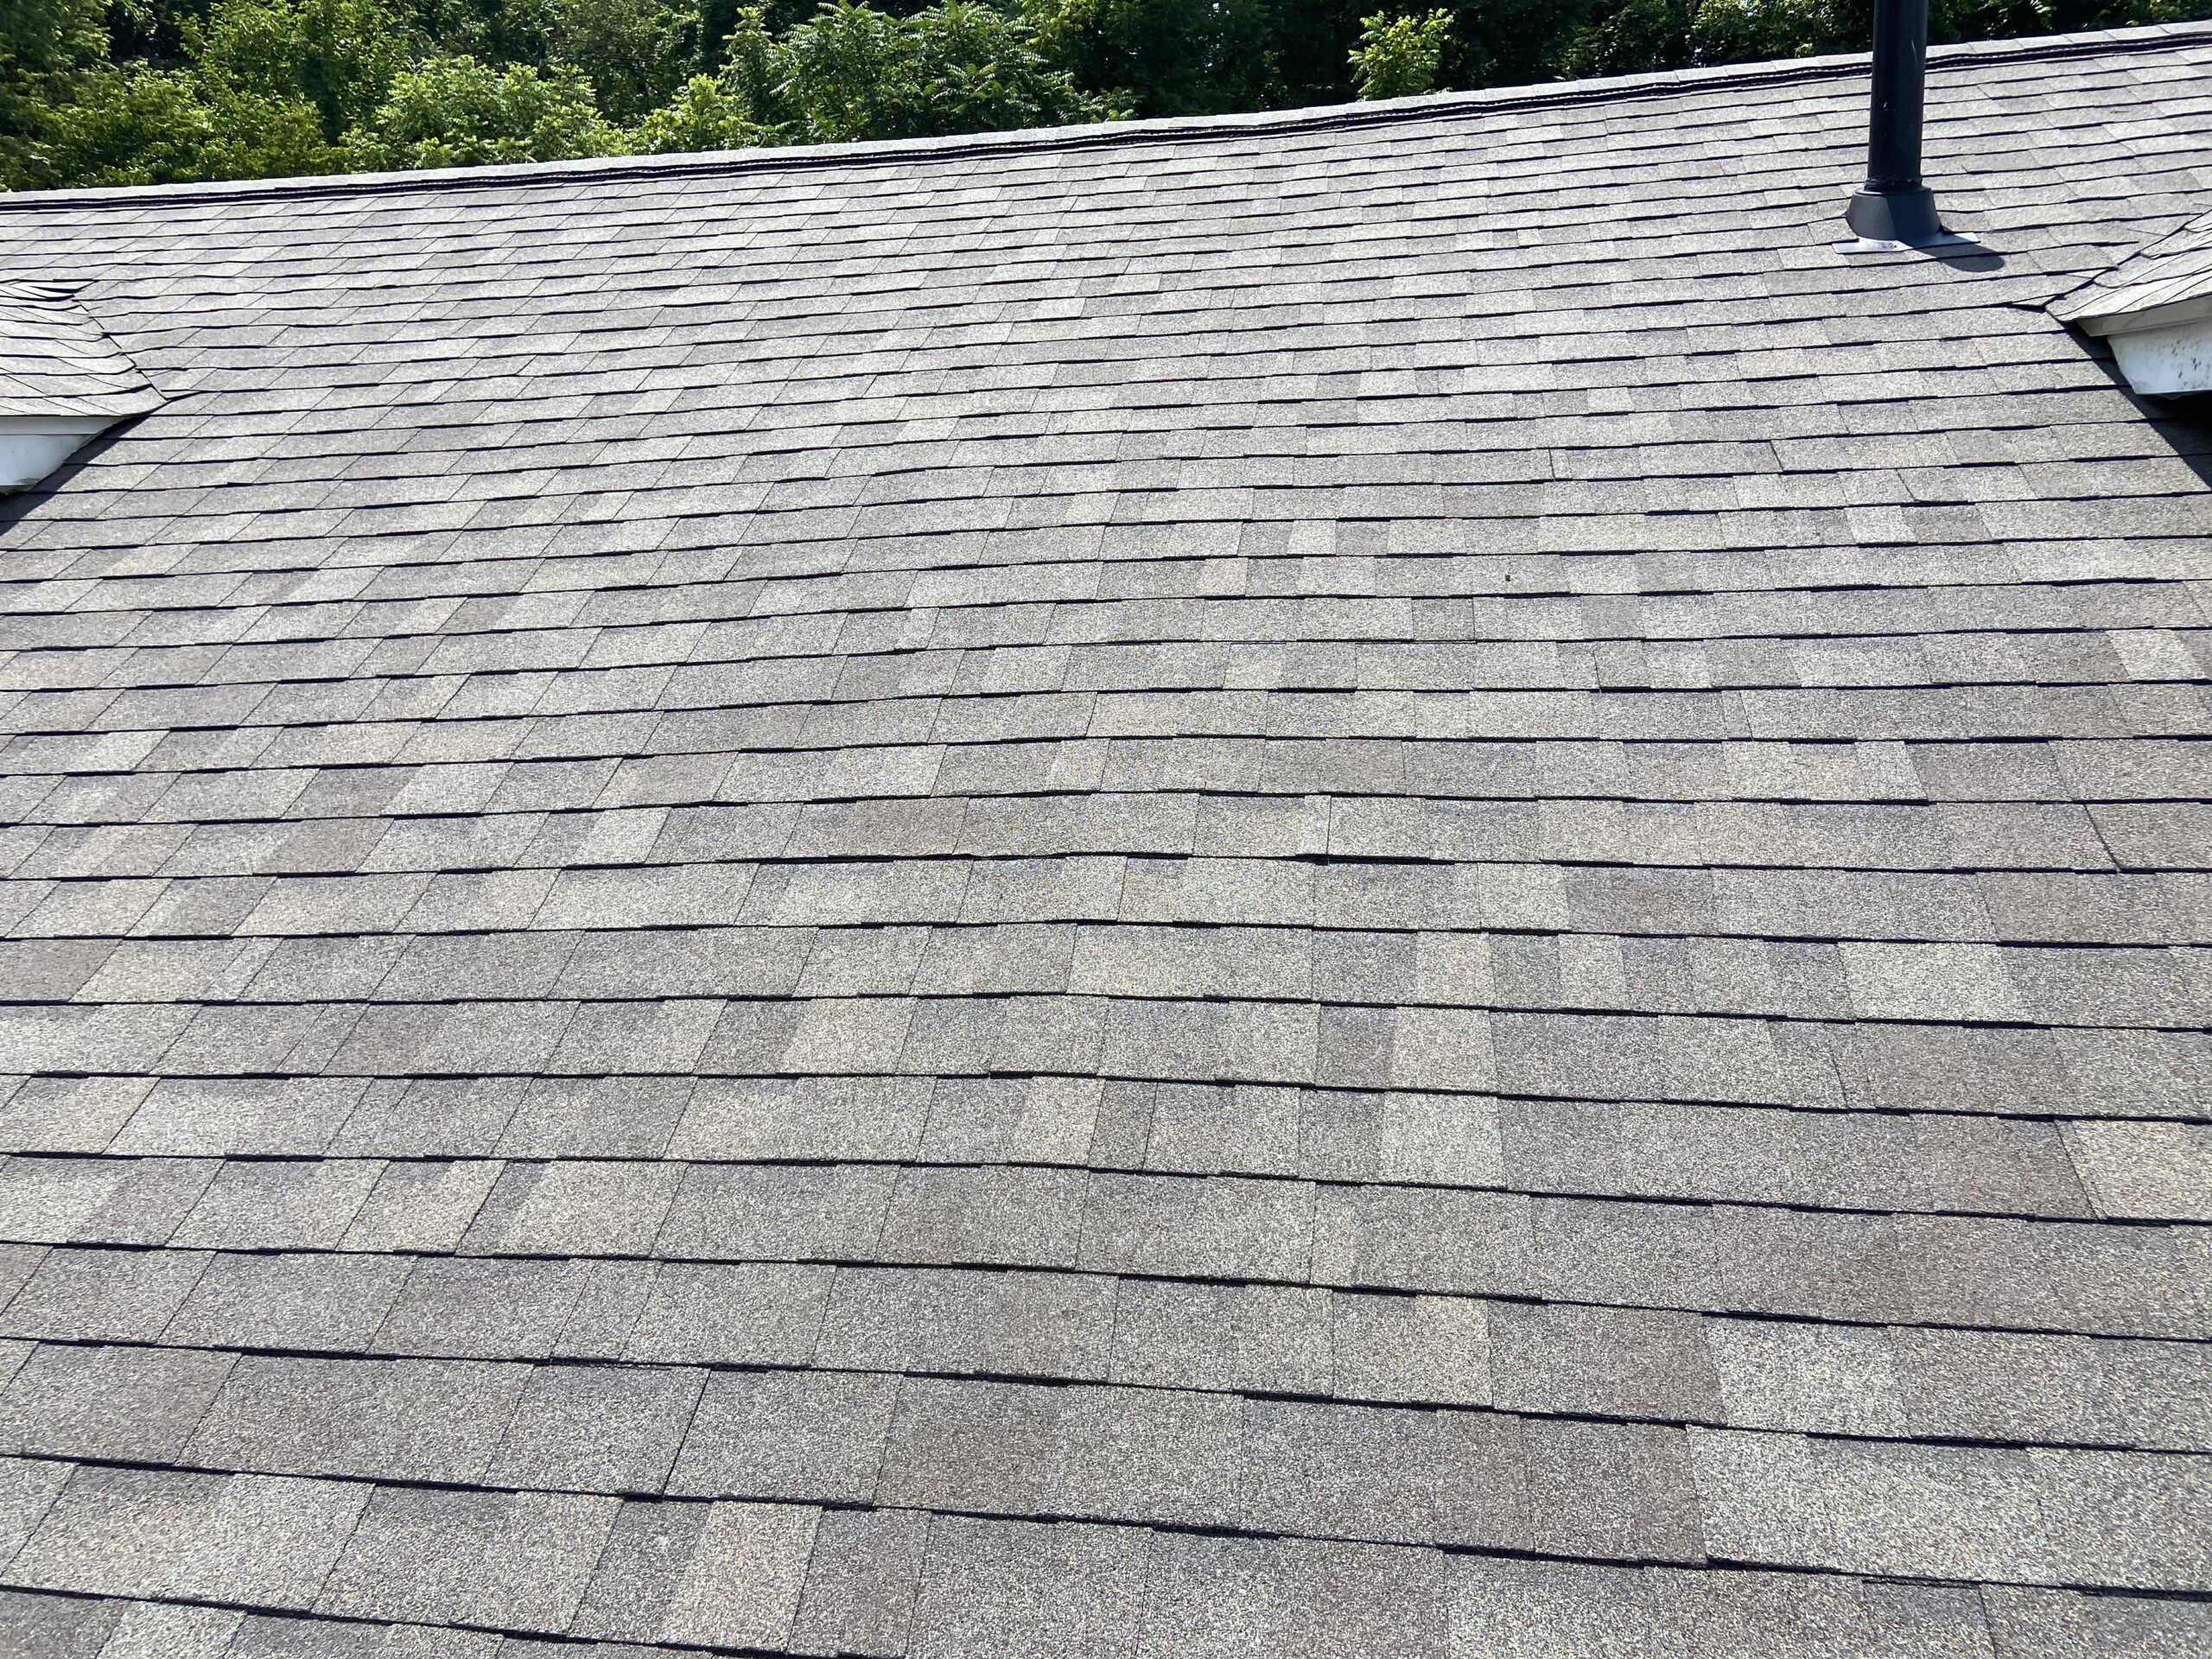 new owns corning oak driftwood shingles look great on this roof in knoxville tn